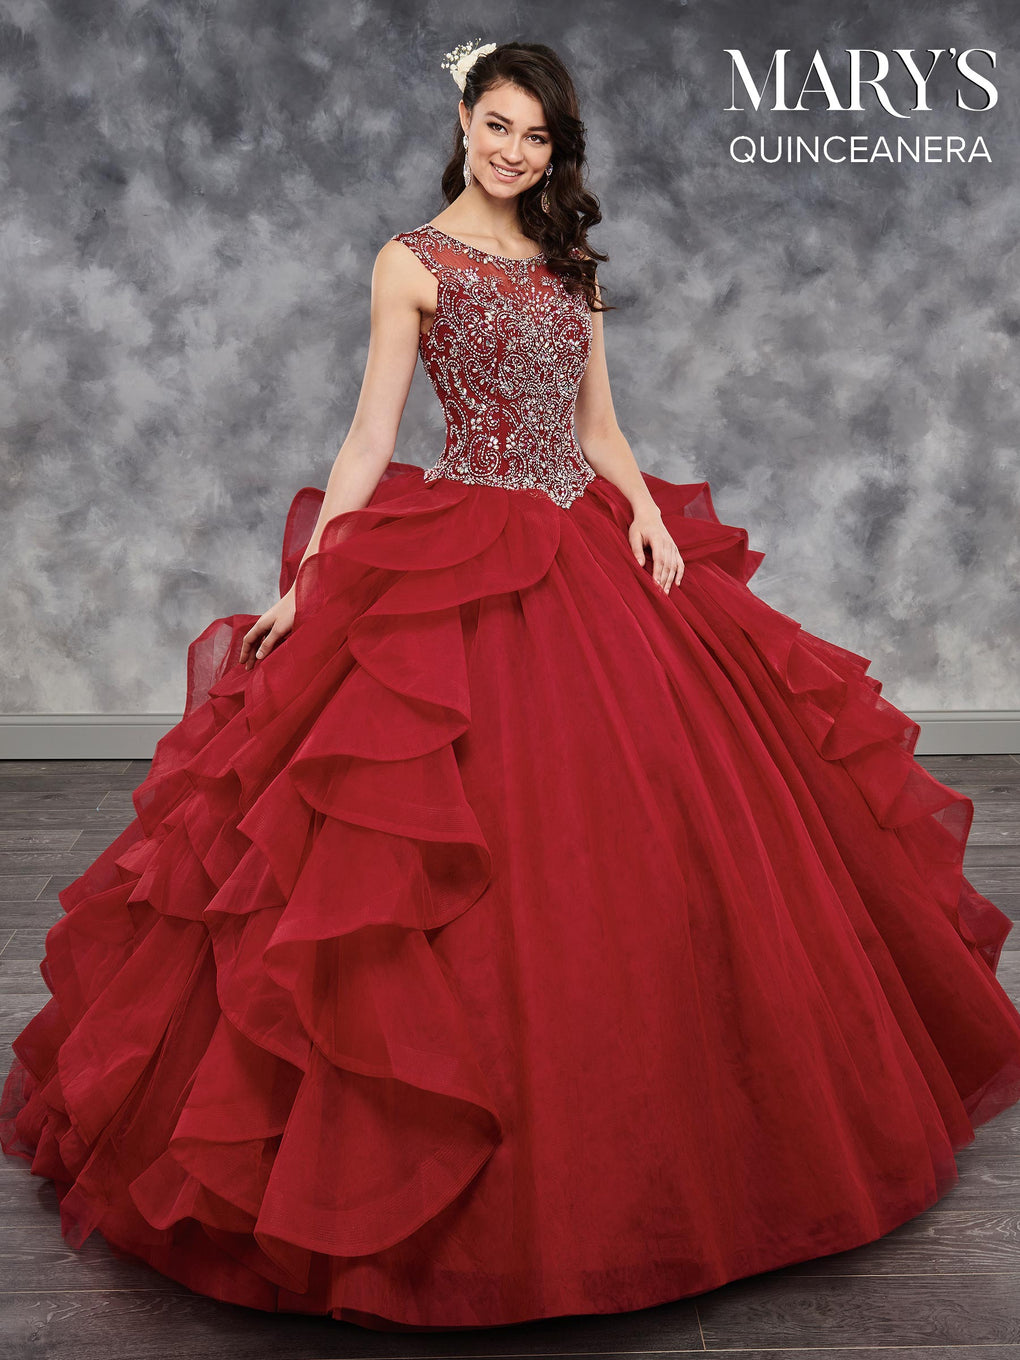 Marys Quinceanera Dresses in Deep Blush, Burgundy, Lavender, or White Color